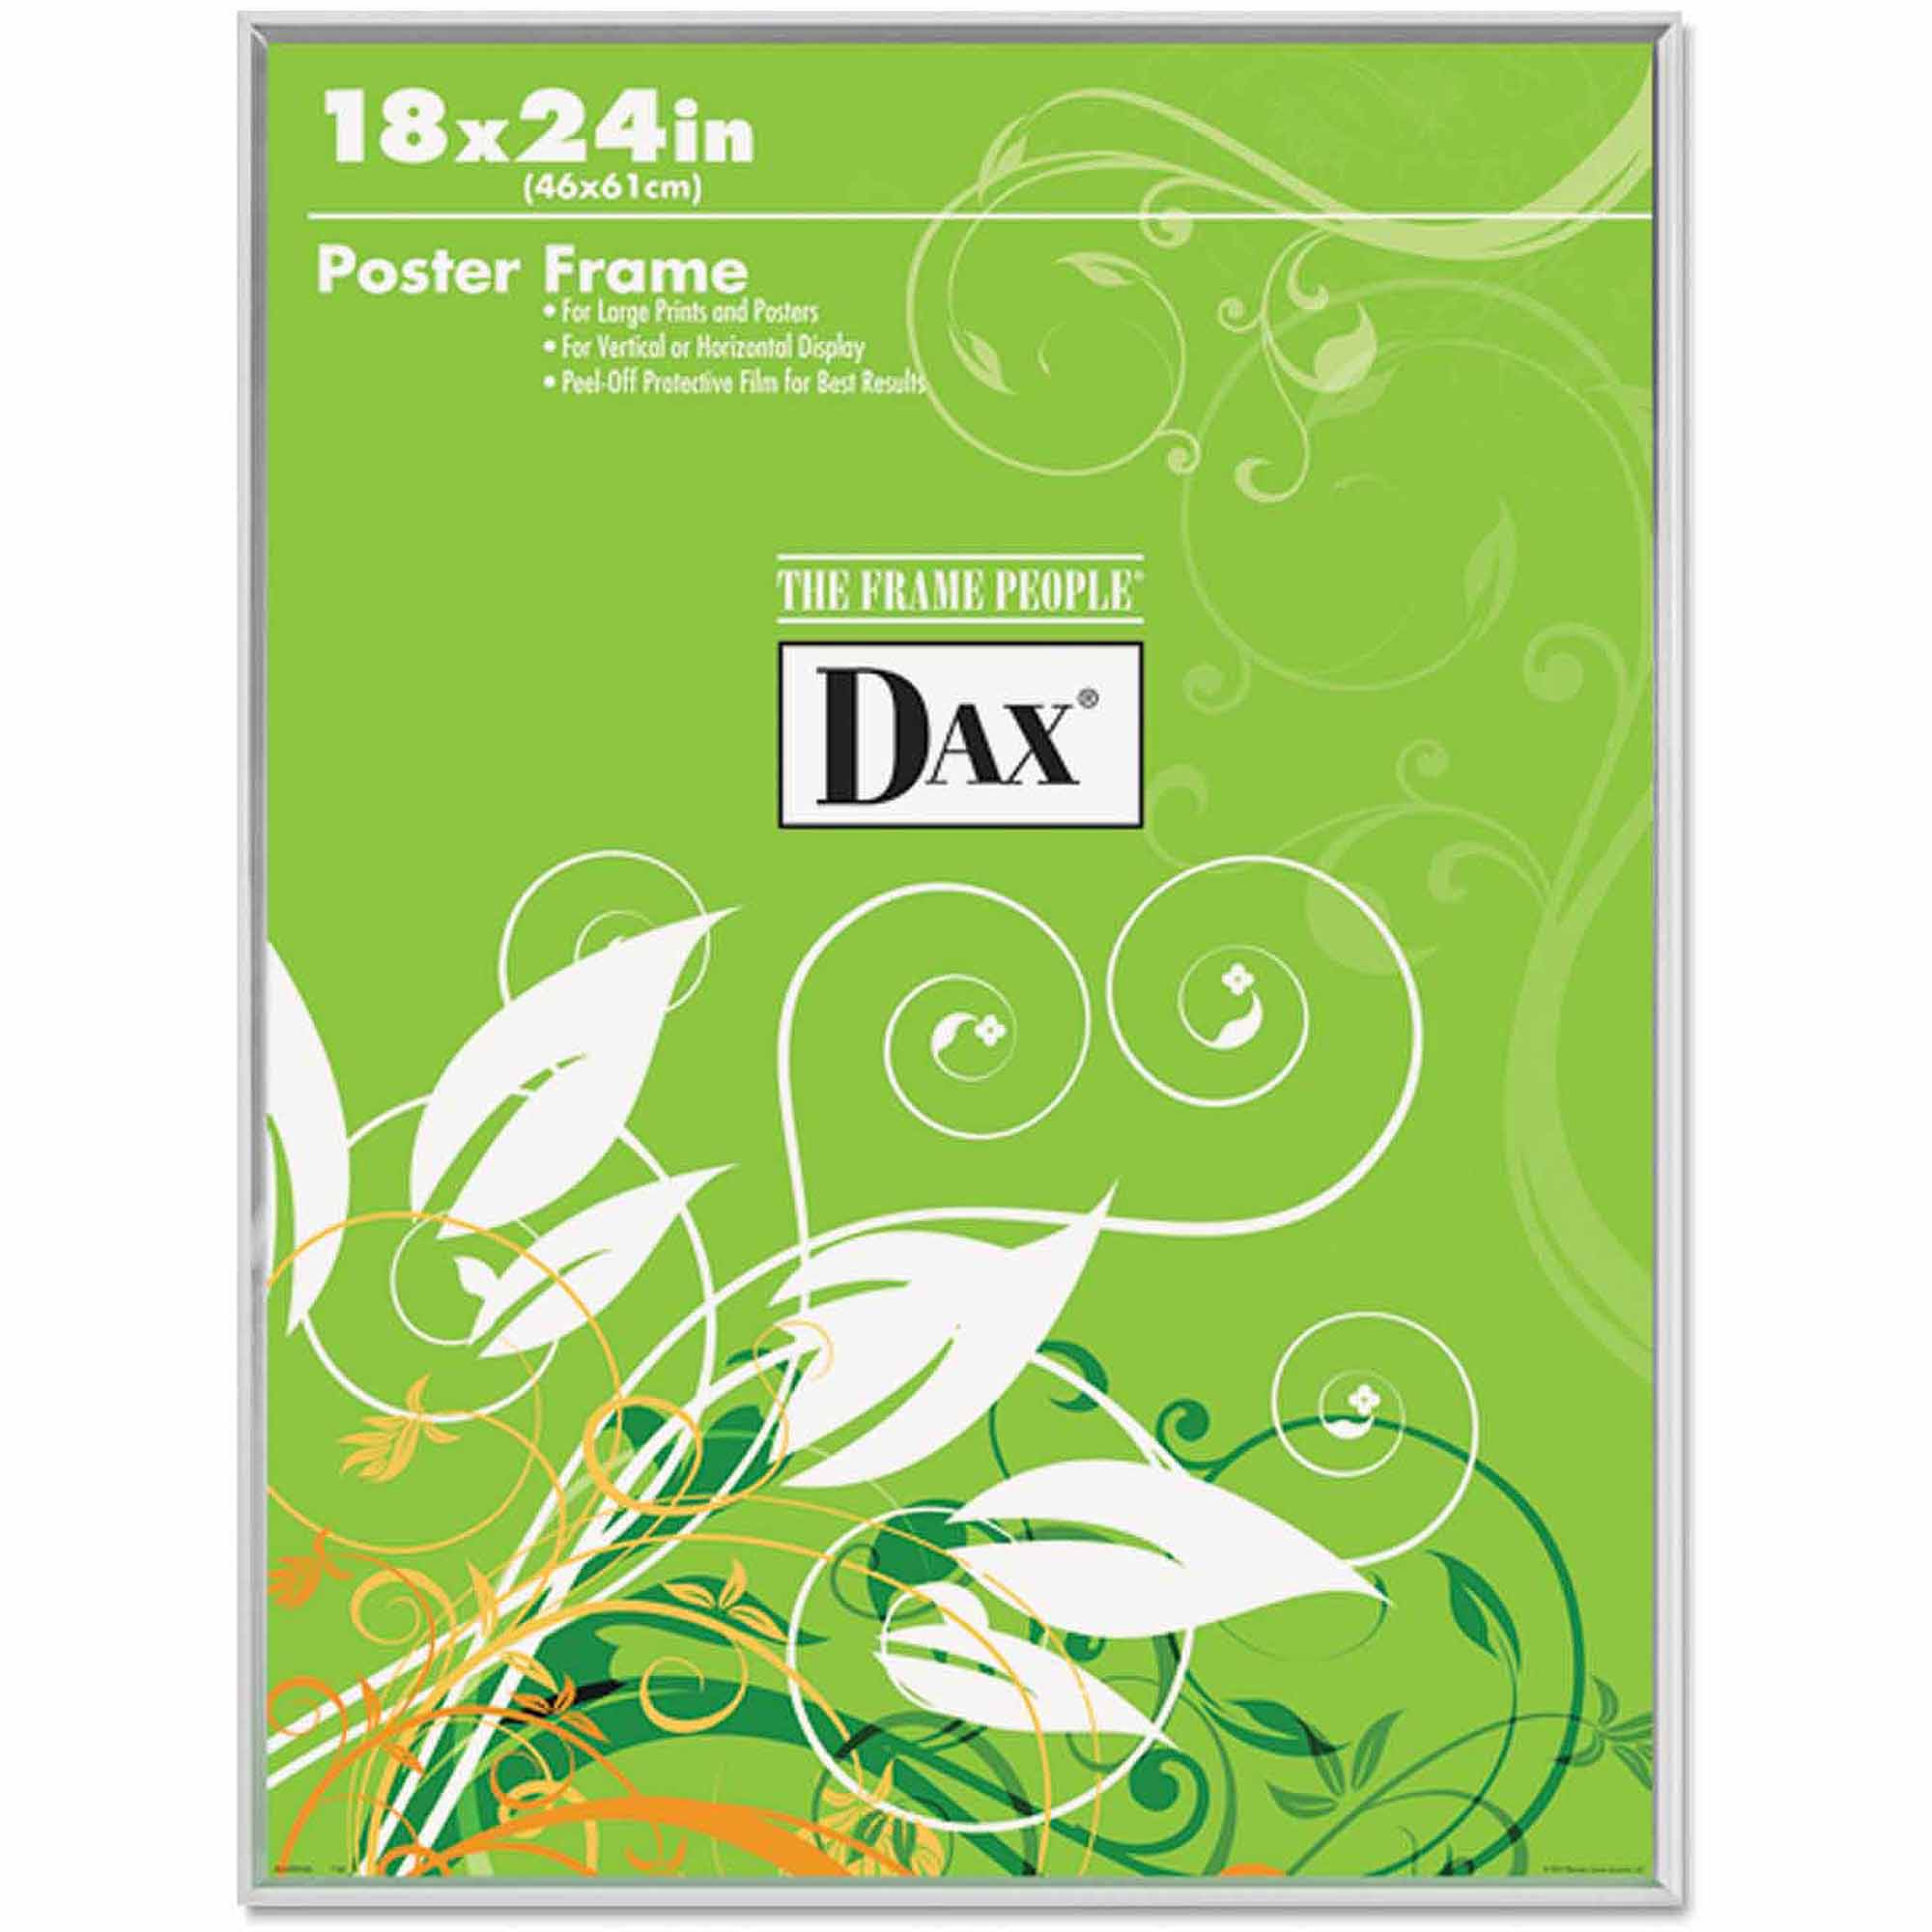 "DAX U-Channel Poster Frame, Contemporary Clear Plastic Window, 18"" x 24"", Clear Border"